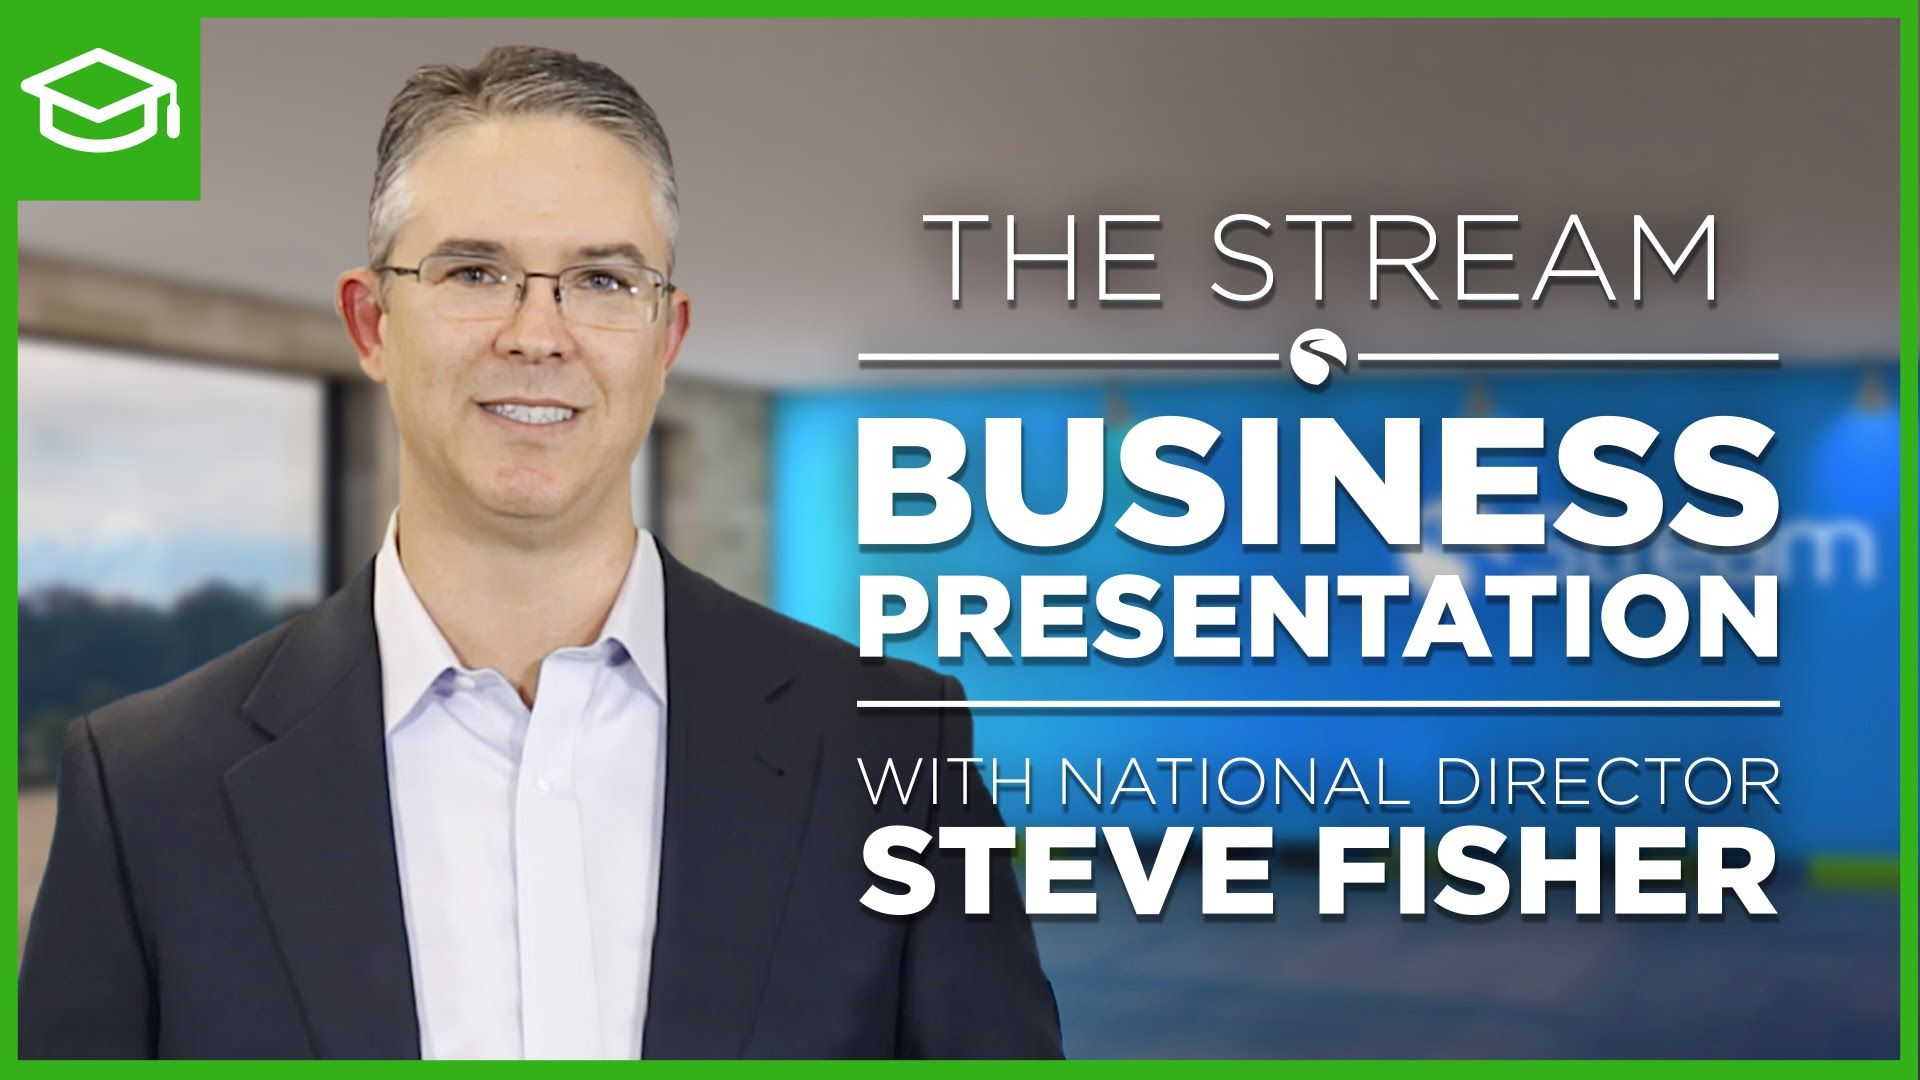 Stream Business Presentation With Nd Steve Fisher  Stream Energy